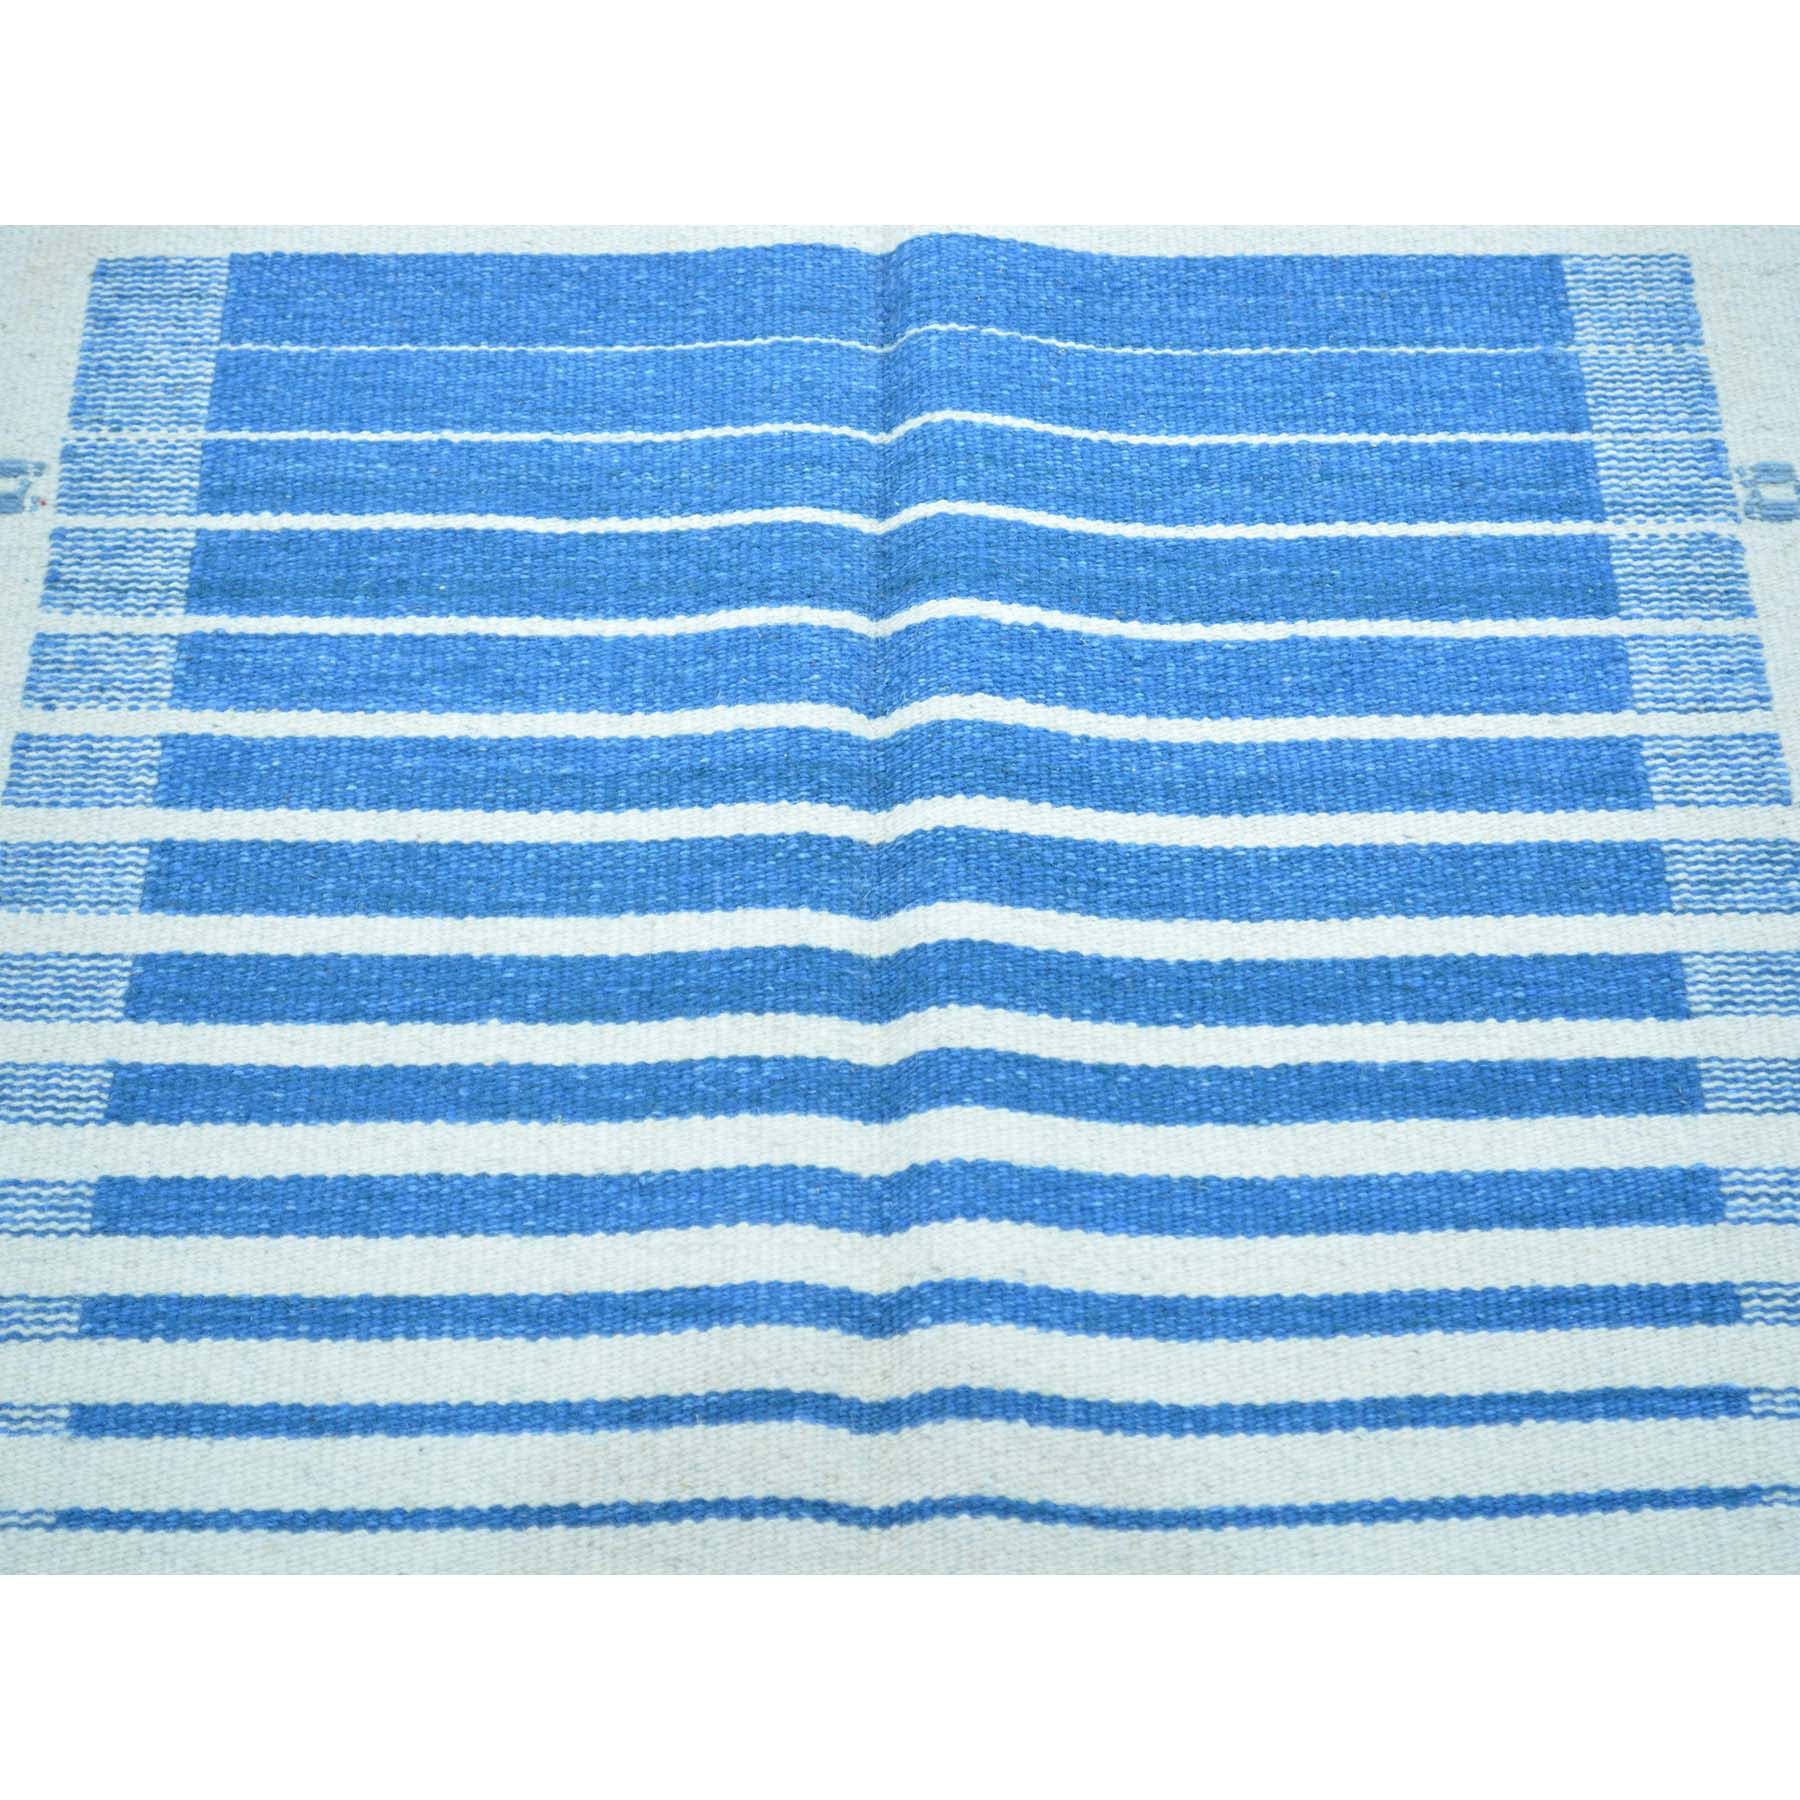 "Handmade Flat Weave Rectangle Rug > Design# SH30064 > Size: 5'-8"" x 8'-5"" [ONLINE ONLY]"